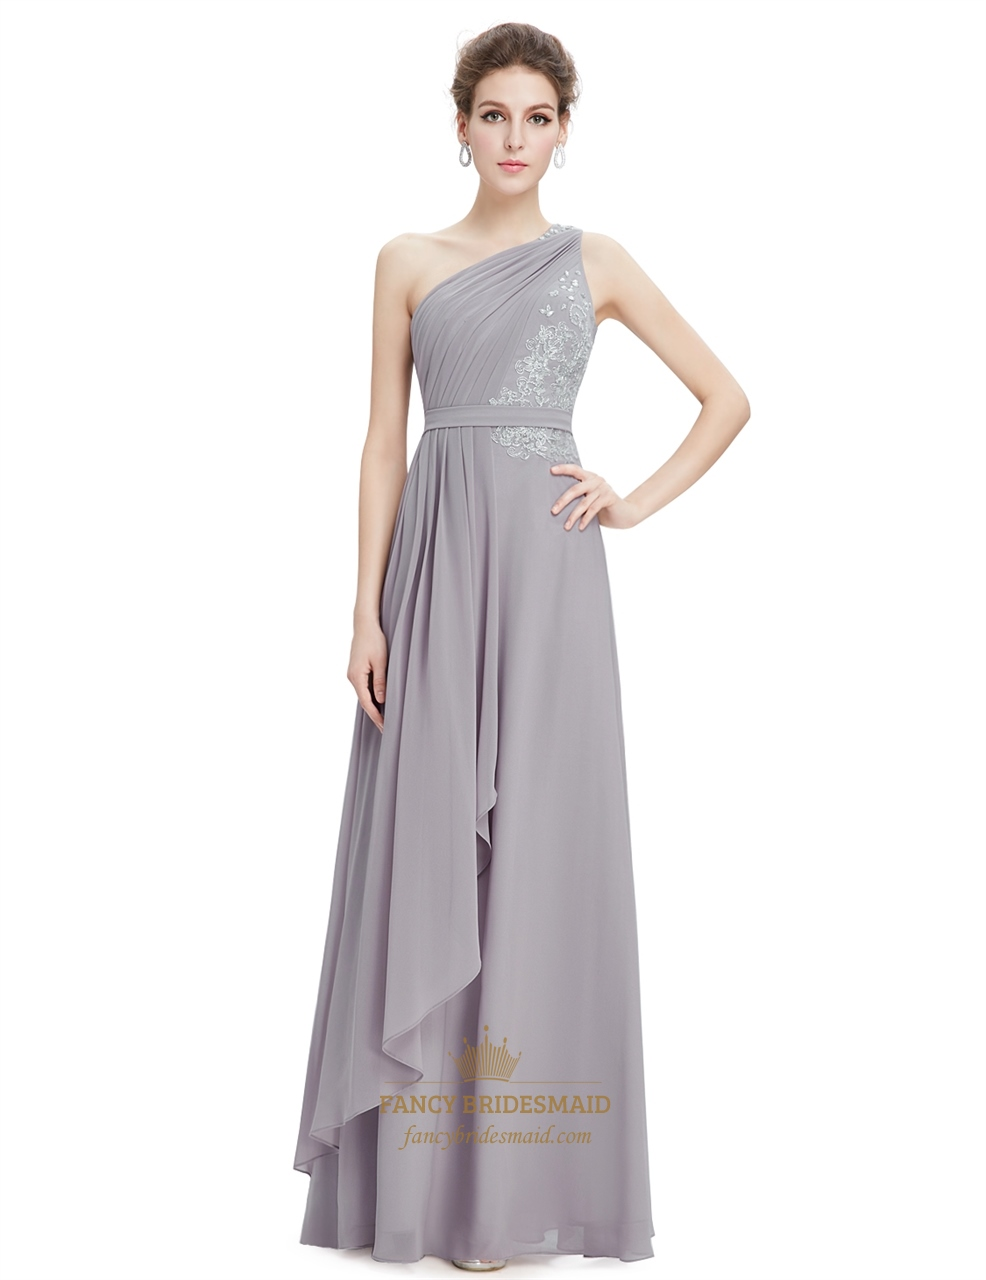 Designed with elegant chiffon tiers and a sweet one-shoulder style, Adrianna Papell's dress lends plenty of romance all night long. A satiny ribbon at the waist cinches in your shape. Hidden back zipper with hook-and-eye closure.